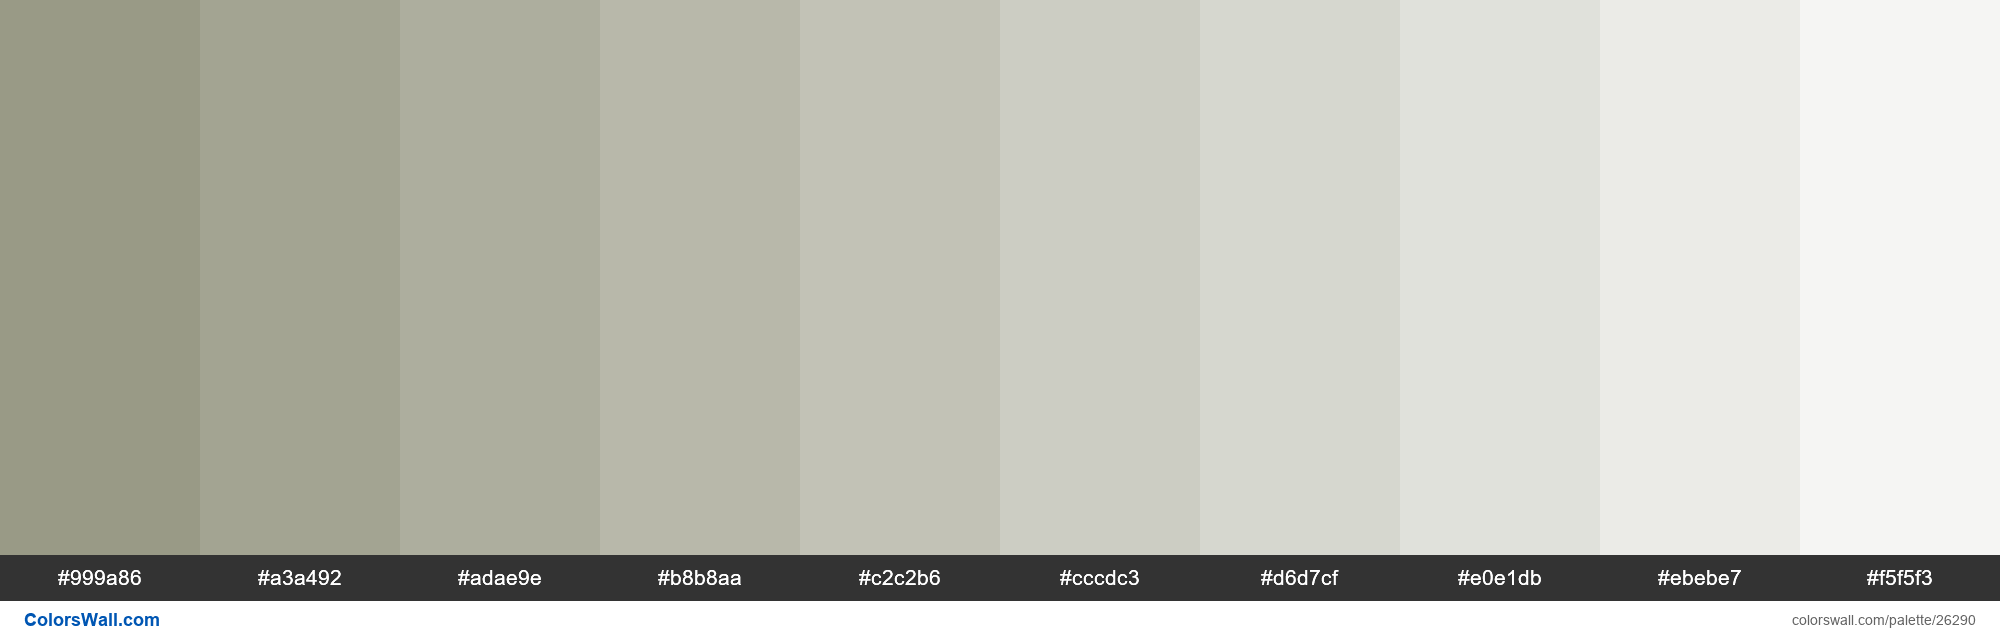 Tints of Lemon Grass color #999A86 hex - #26290